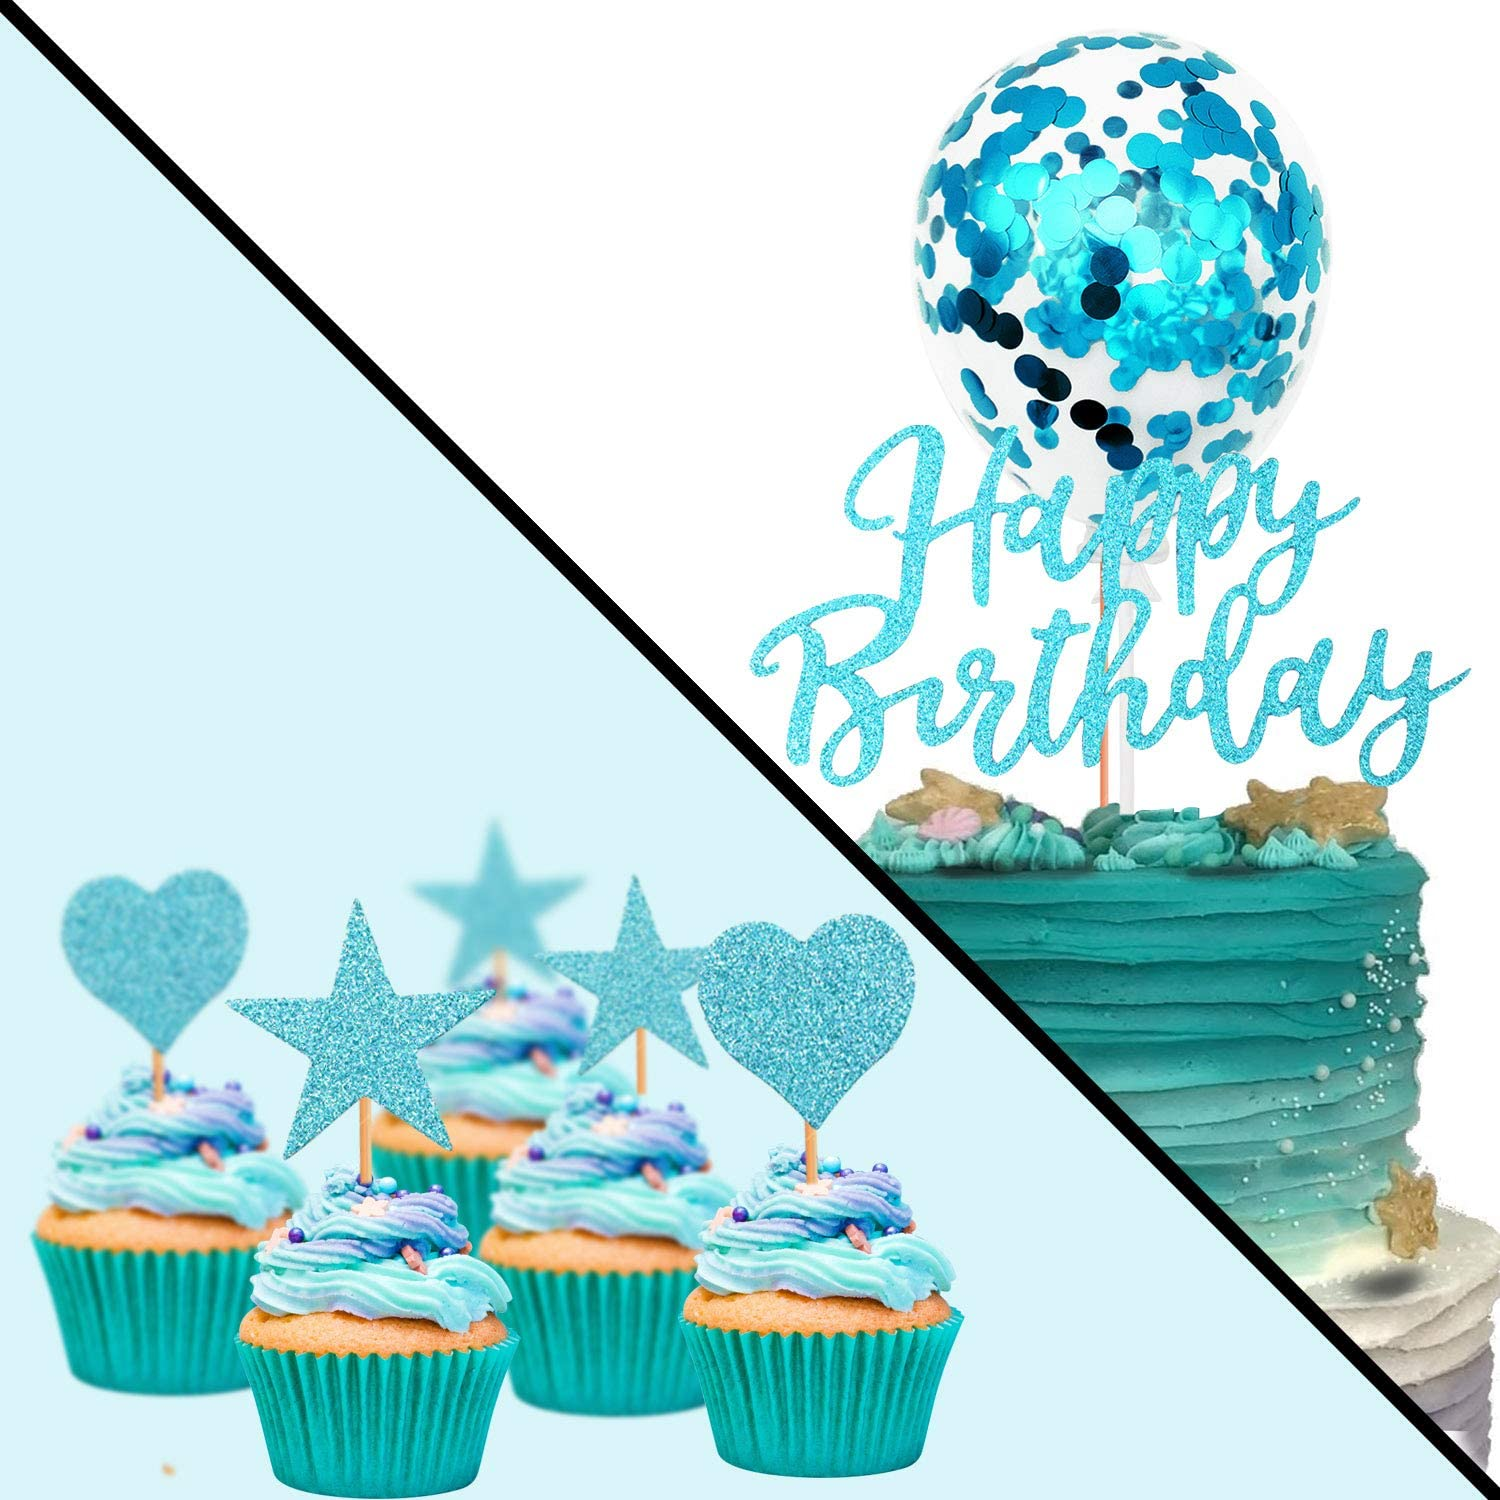 Humairc Blue Cake Topper Silver Confetti Balloon Birthday Cake Decoration Blue Cupcake Topper for Girls Women Boys Mans Kids Adults Birthday Blue